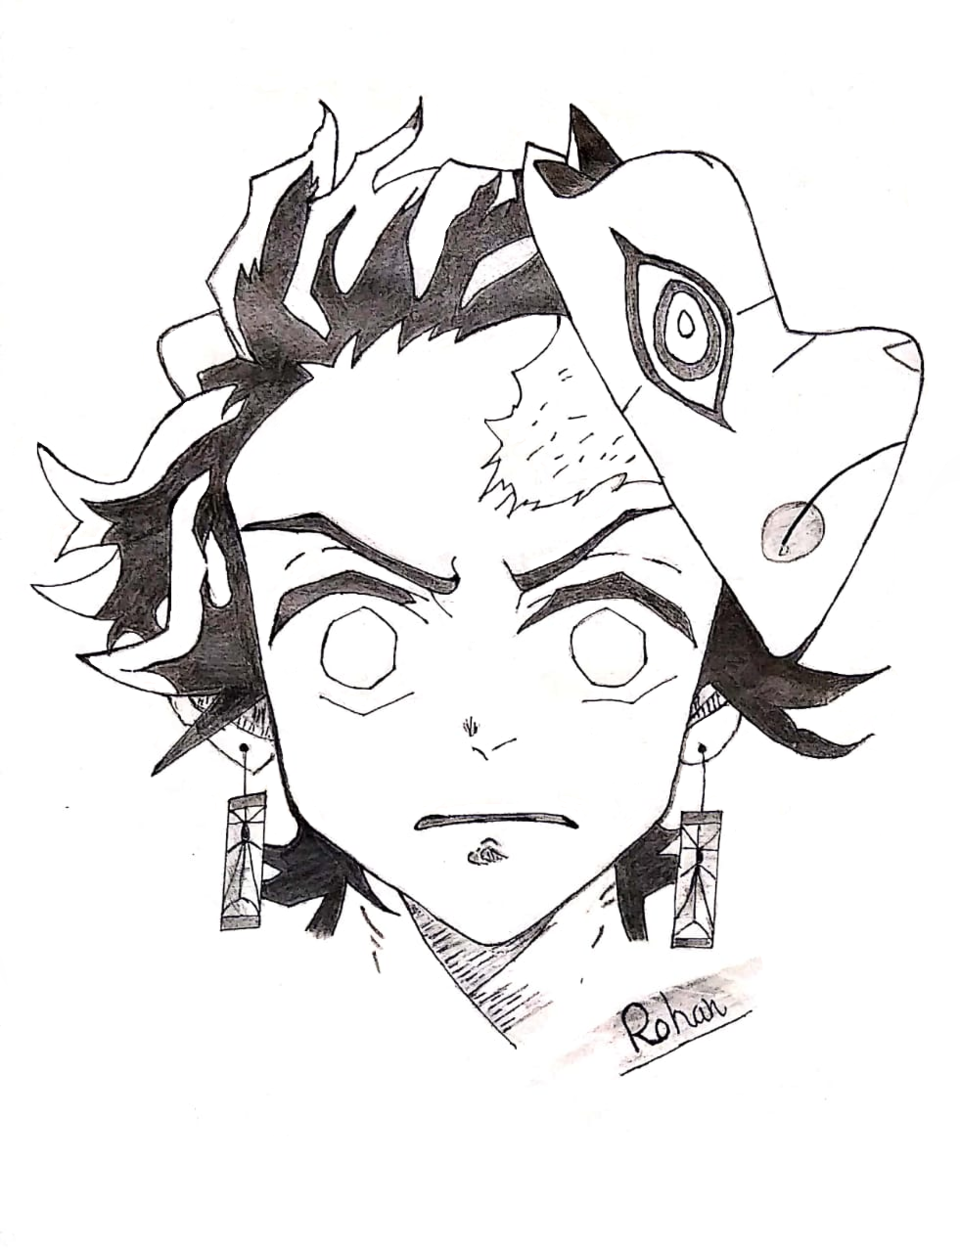 Tanjiro Black & White Illustration Illust of Sinchan96 sci-fi DemonSlayerFanartContest sketch fanart medibangpaint anime illustration KimetsunoYaiba blackandwhite manga